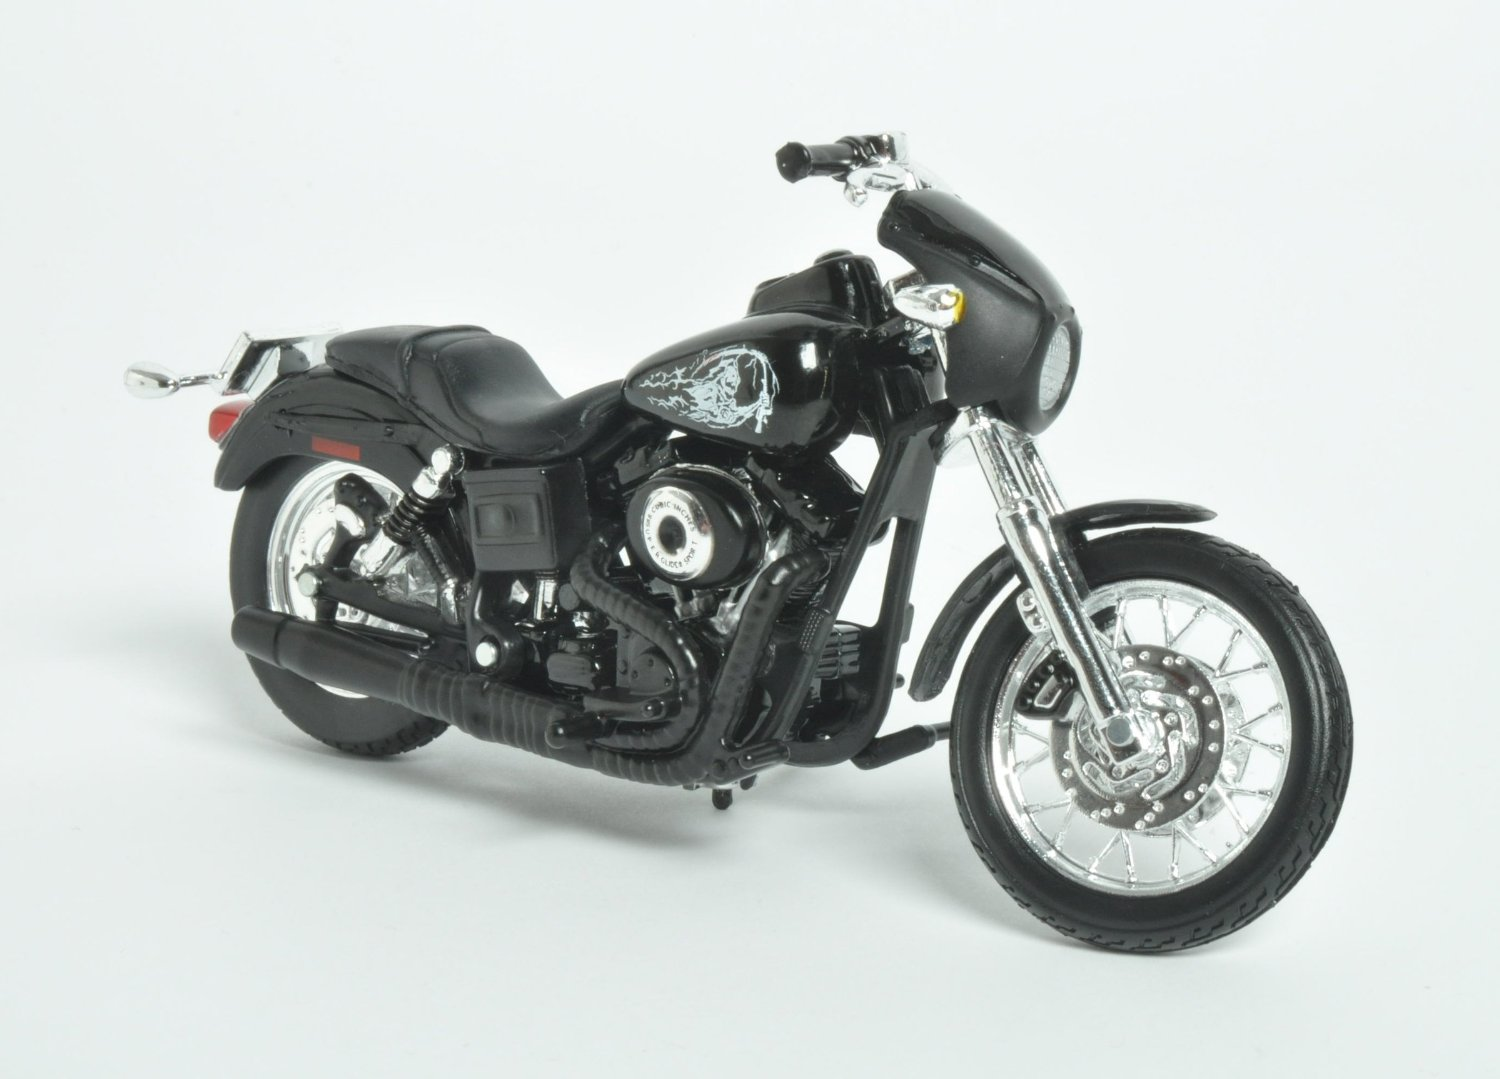 Harley Davidson Dyna Super Glide Sport For Sale